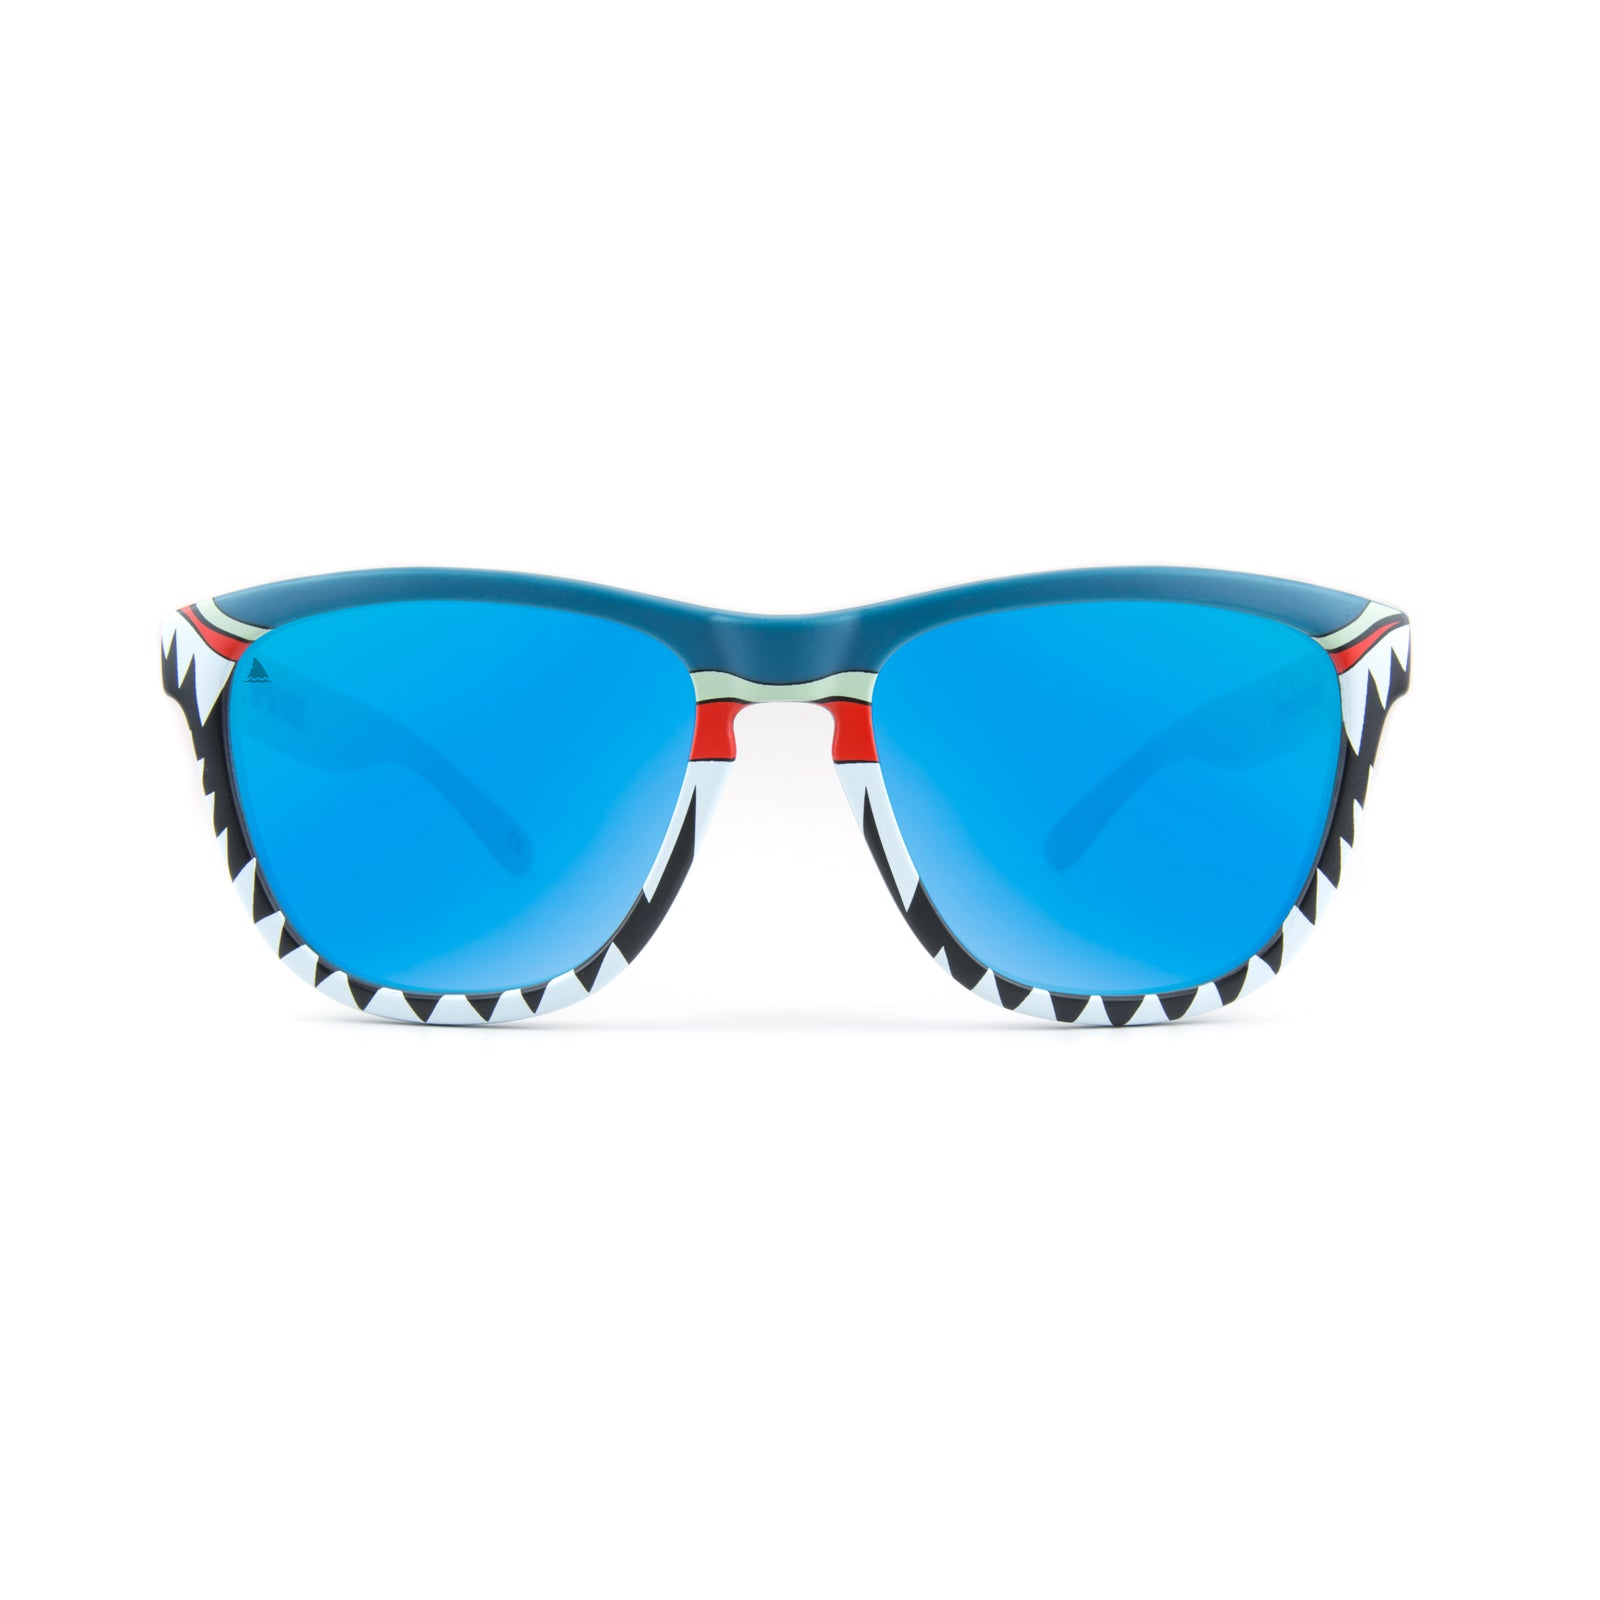 Shark Week x Knockaround